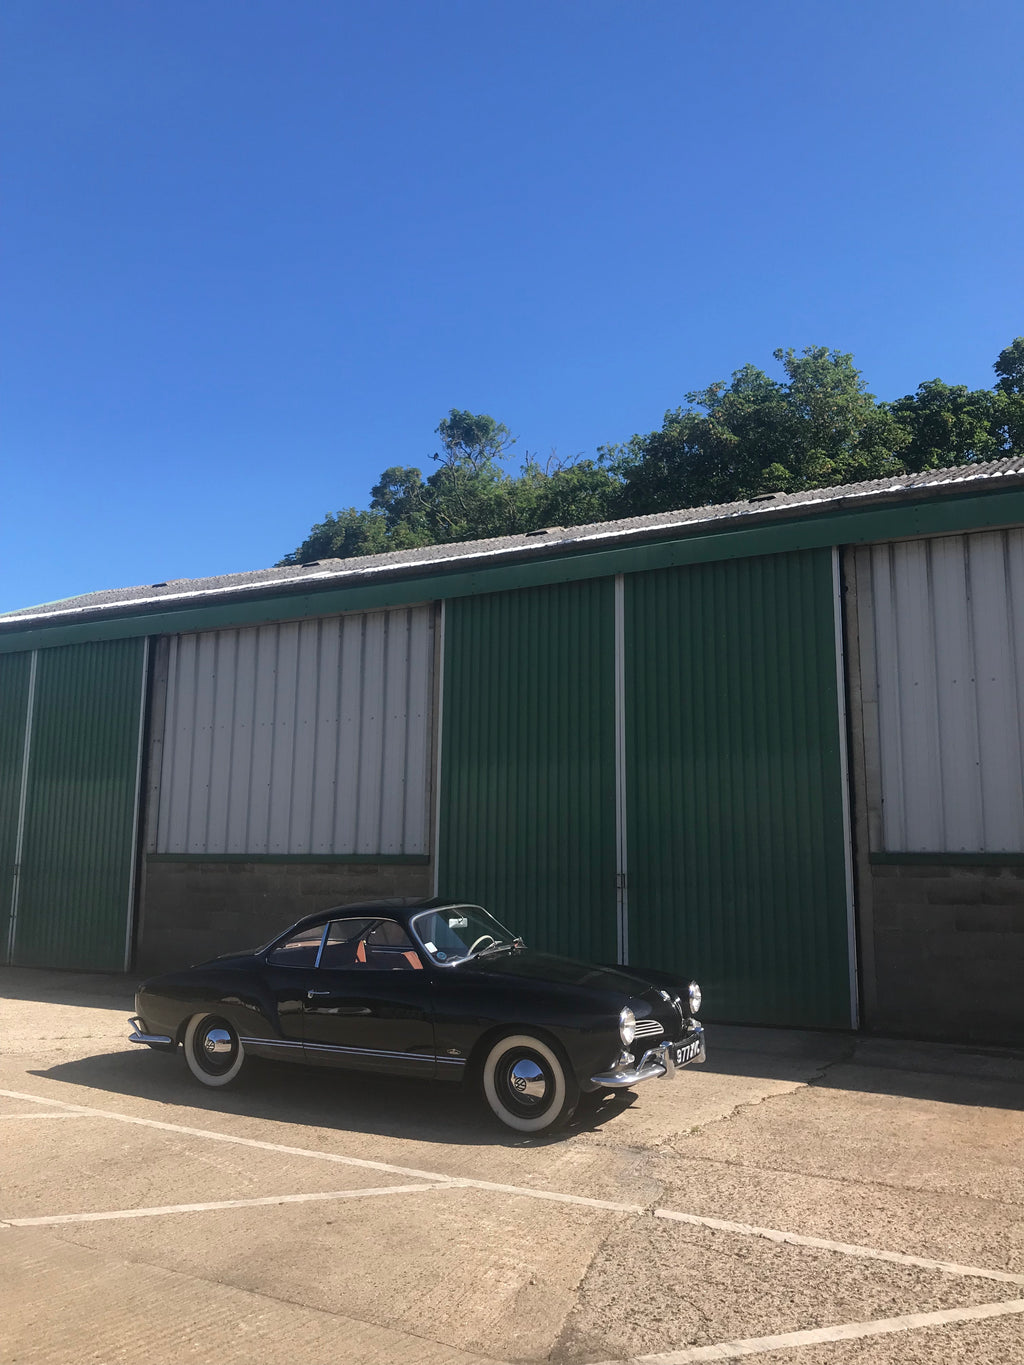 1960 Karmann Ghia - Great example with amazing aged paint